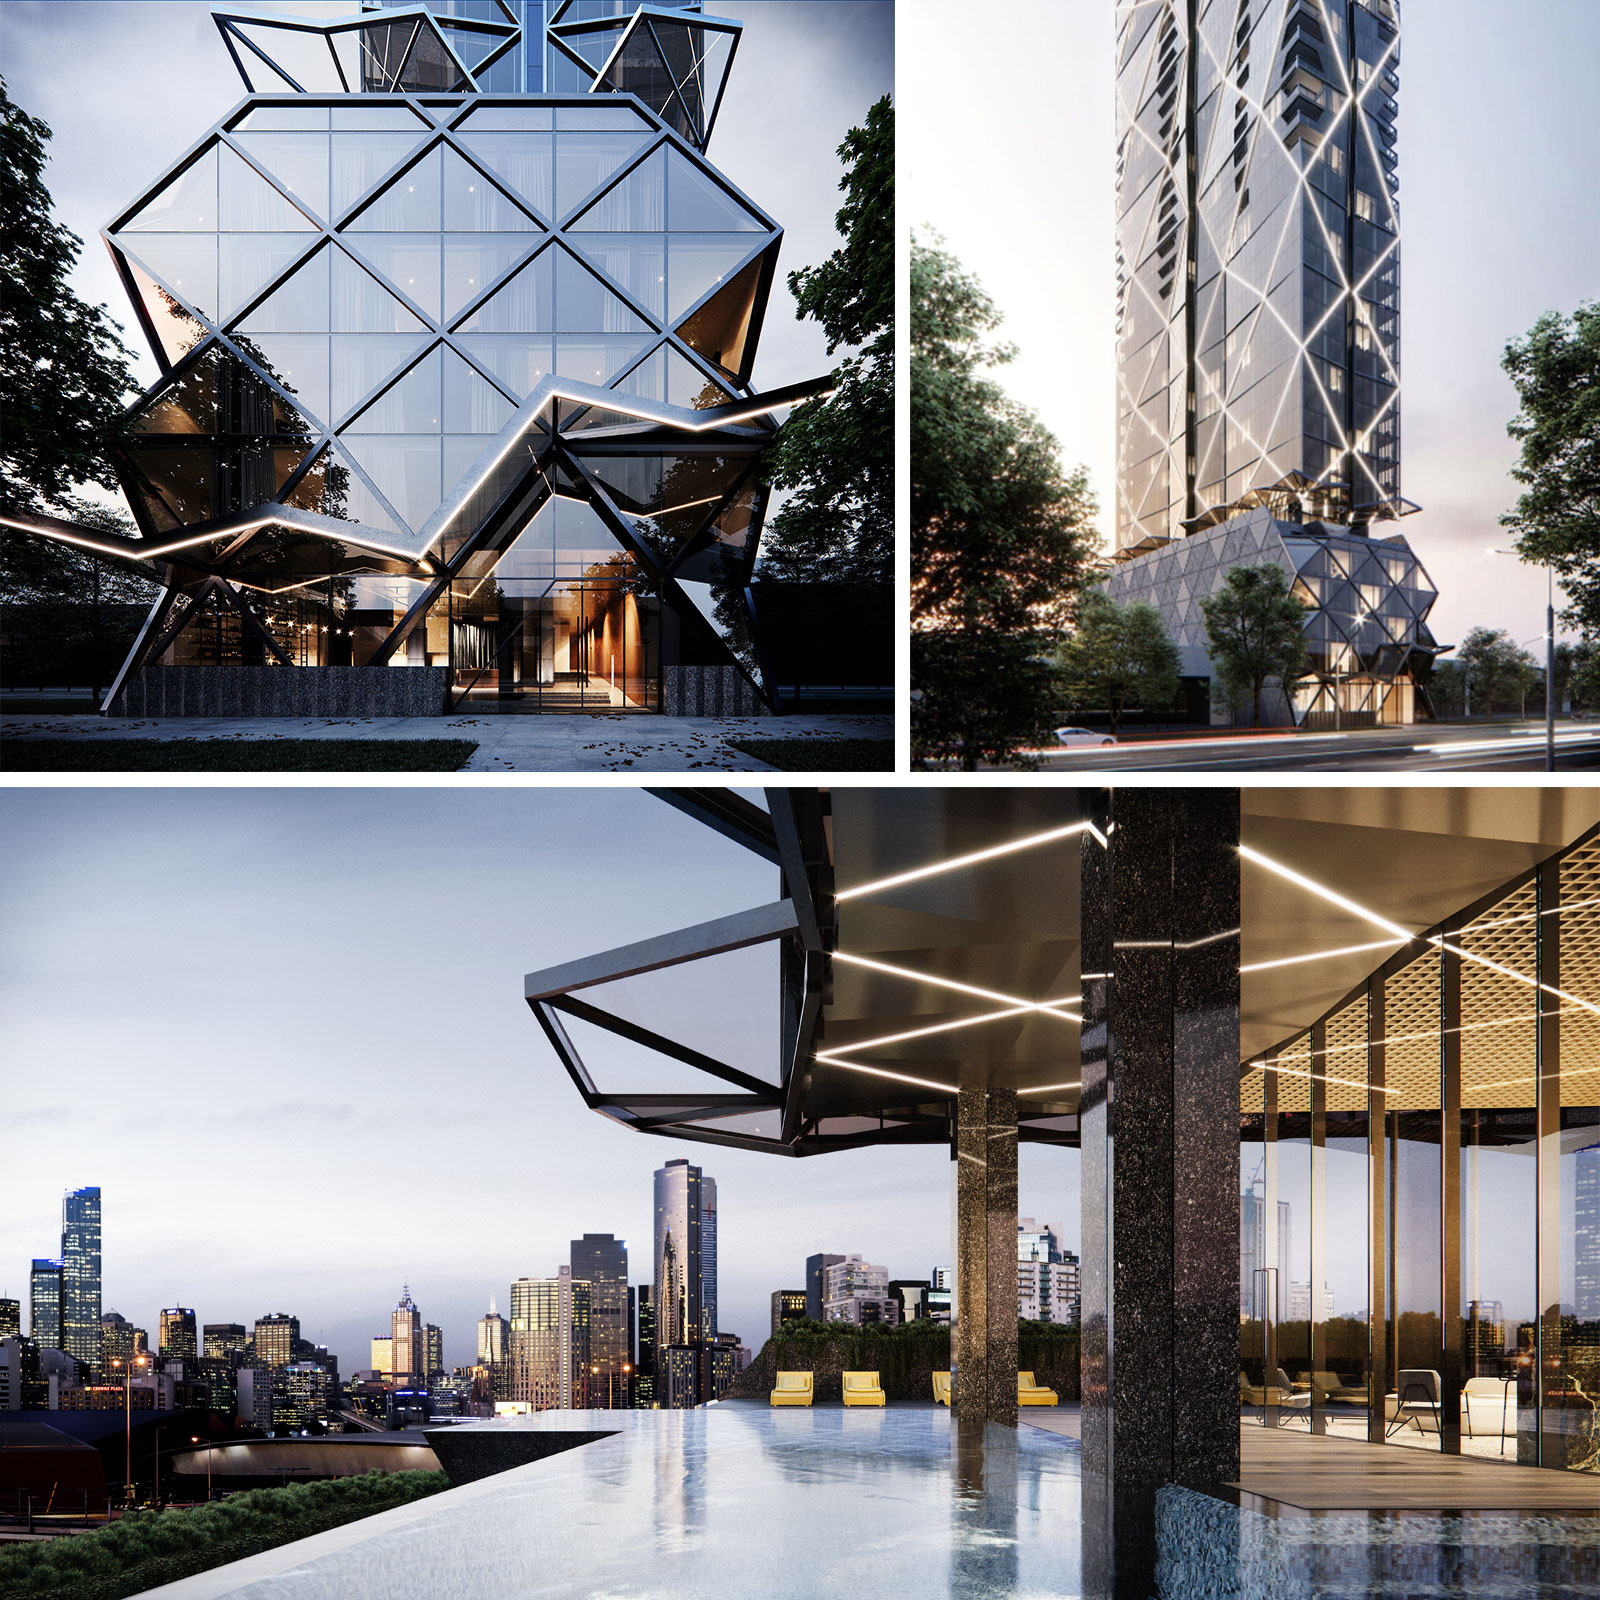 AC Melbourne Southbank will feature an infinity edge cantilevered pool spanning the width of the building with unique city views.